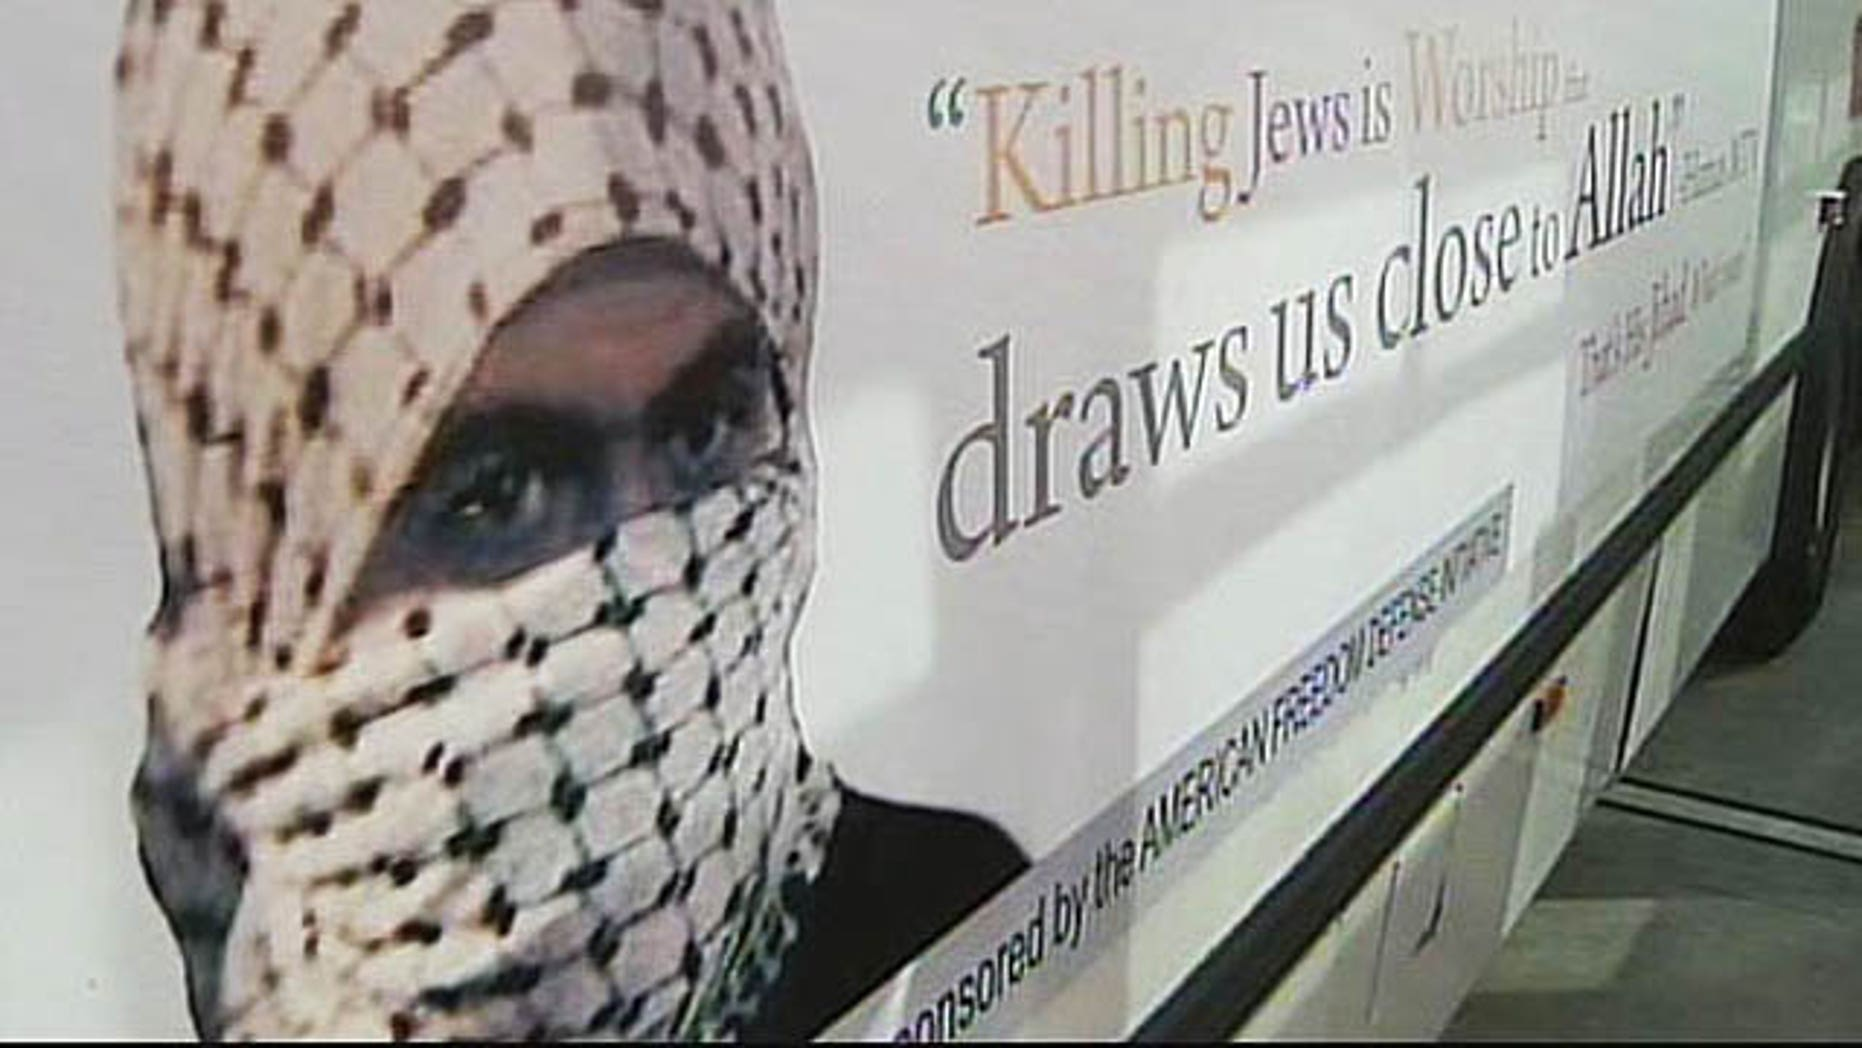 A bus ad in San Francisco is drawing criticism it is racist toward Muslims.